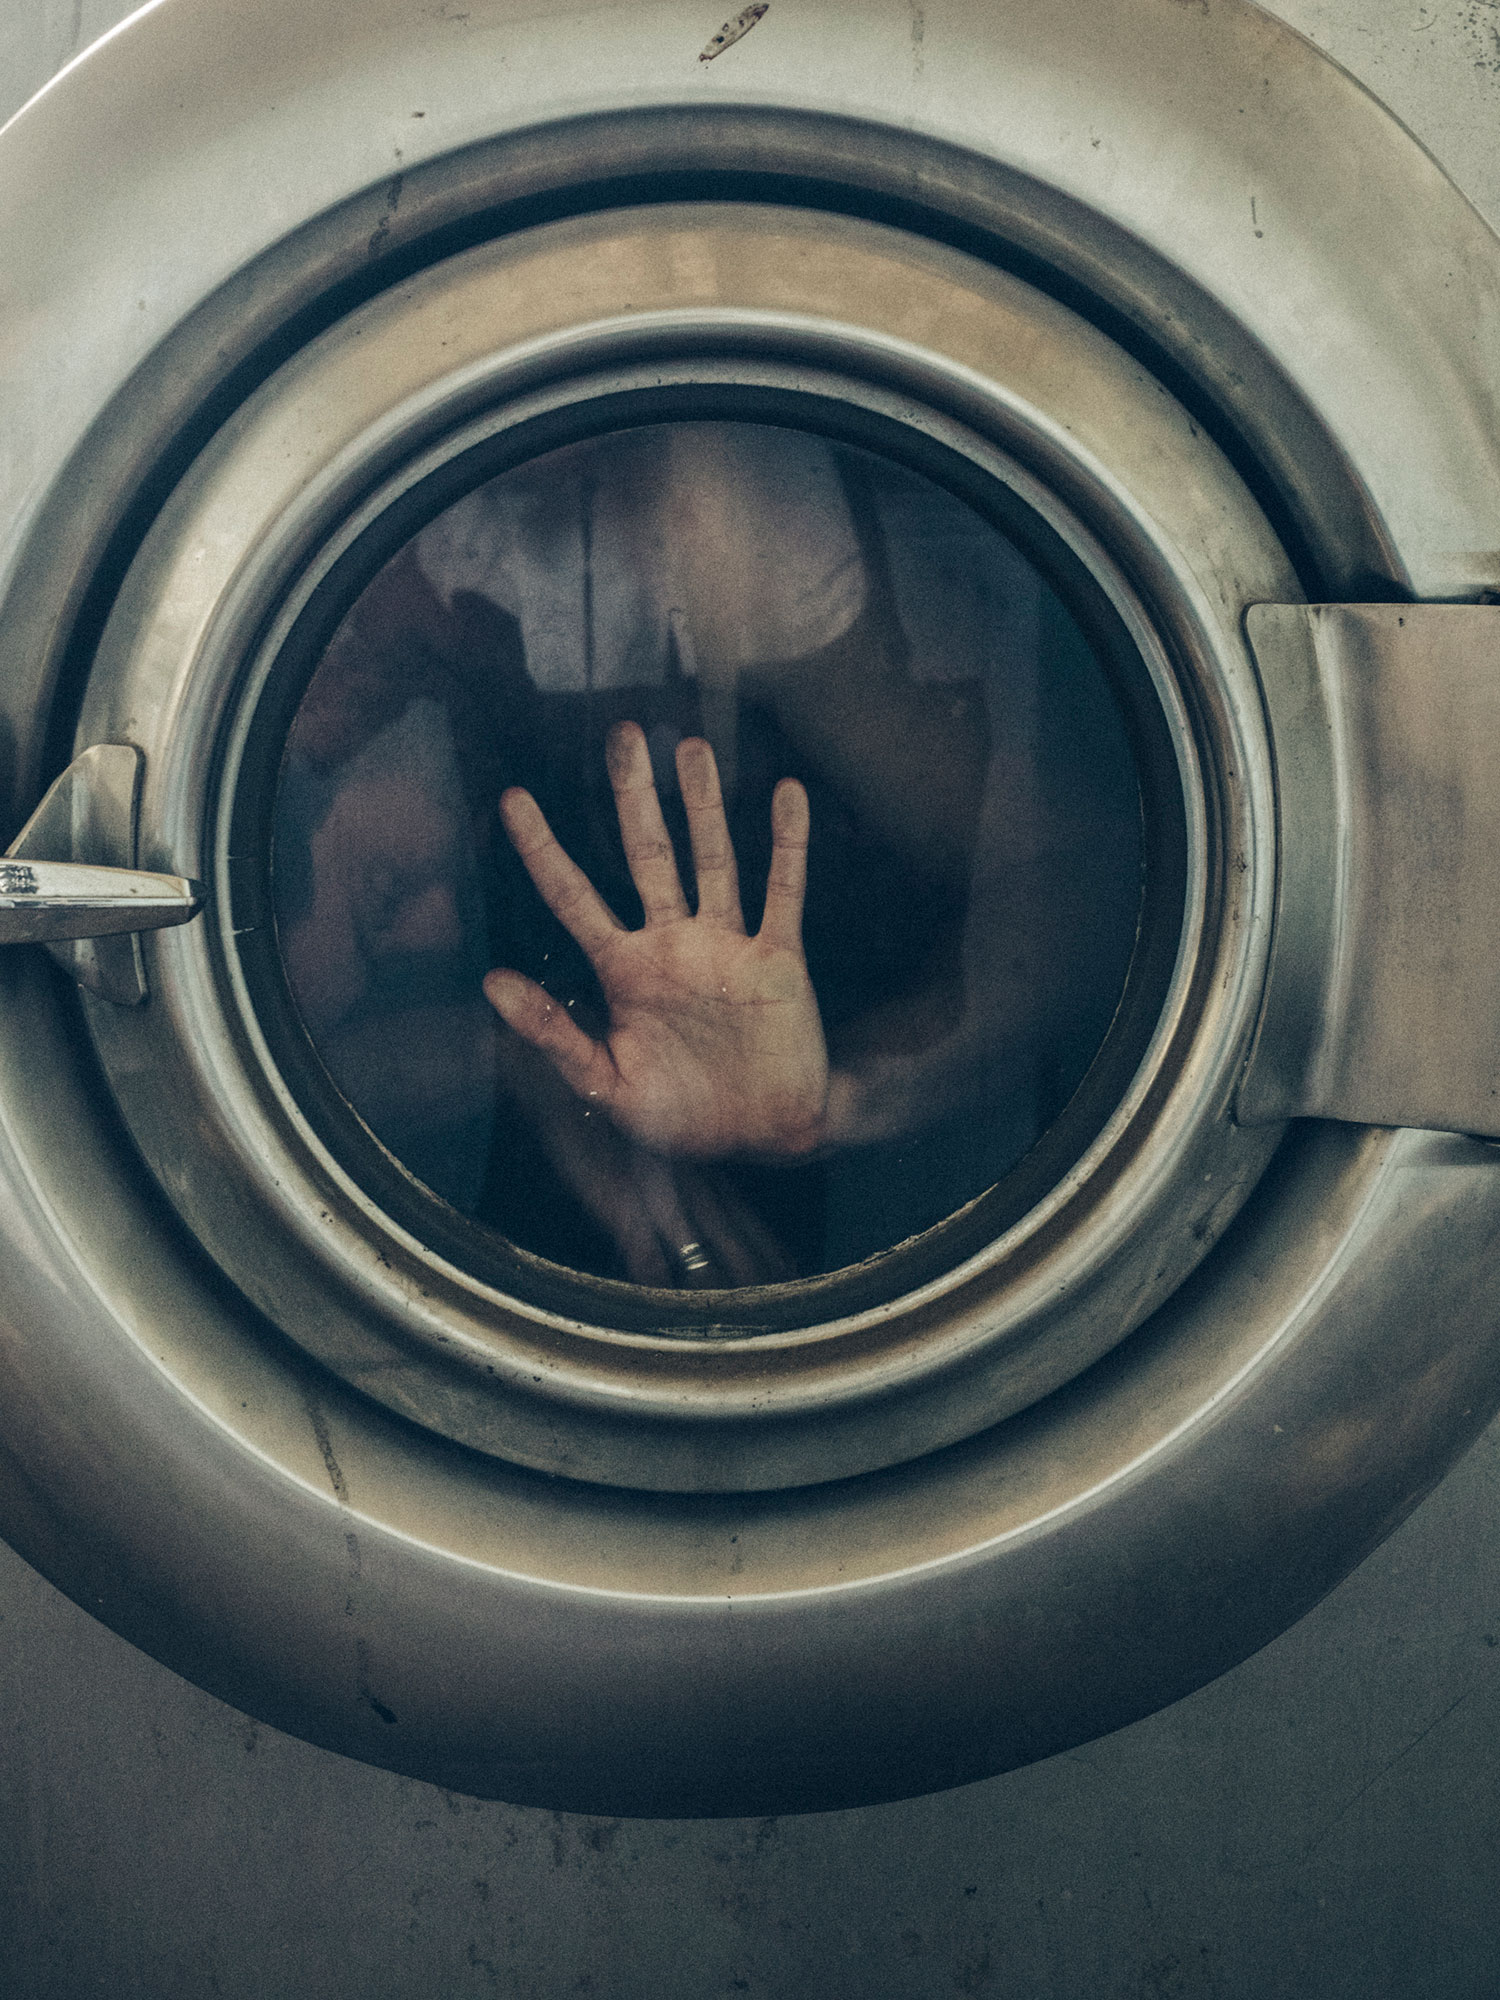 Denise Kwong - hand in laundry machine